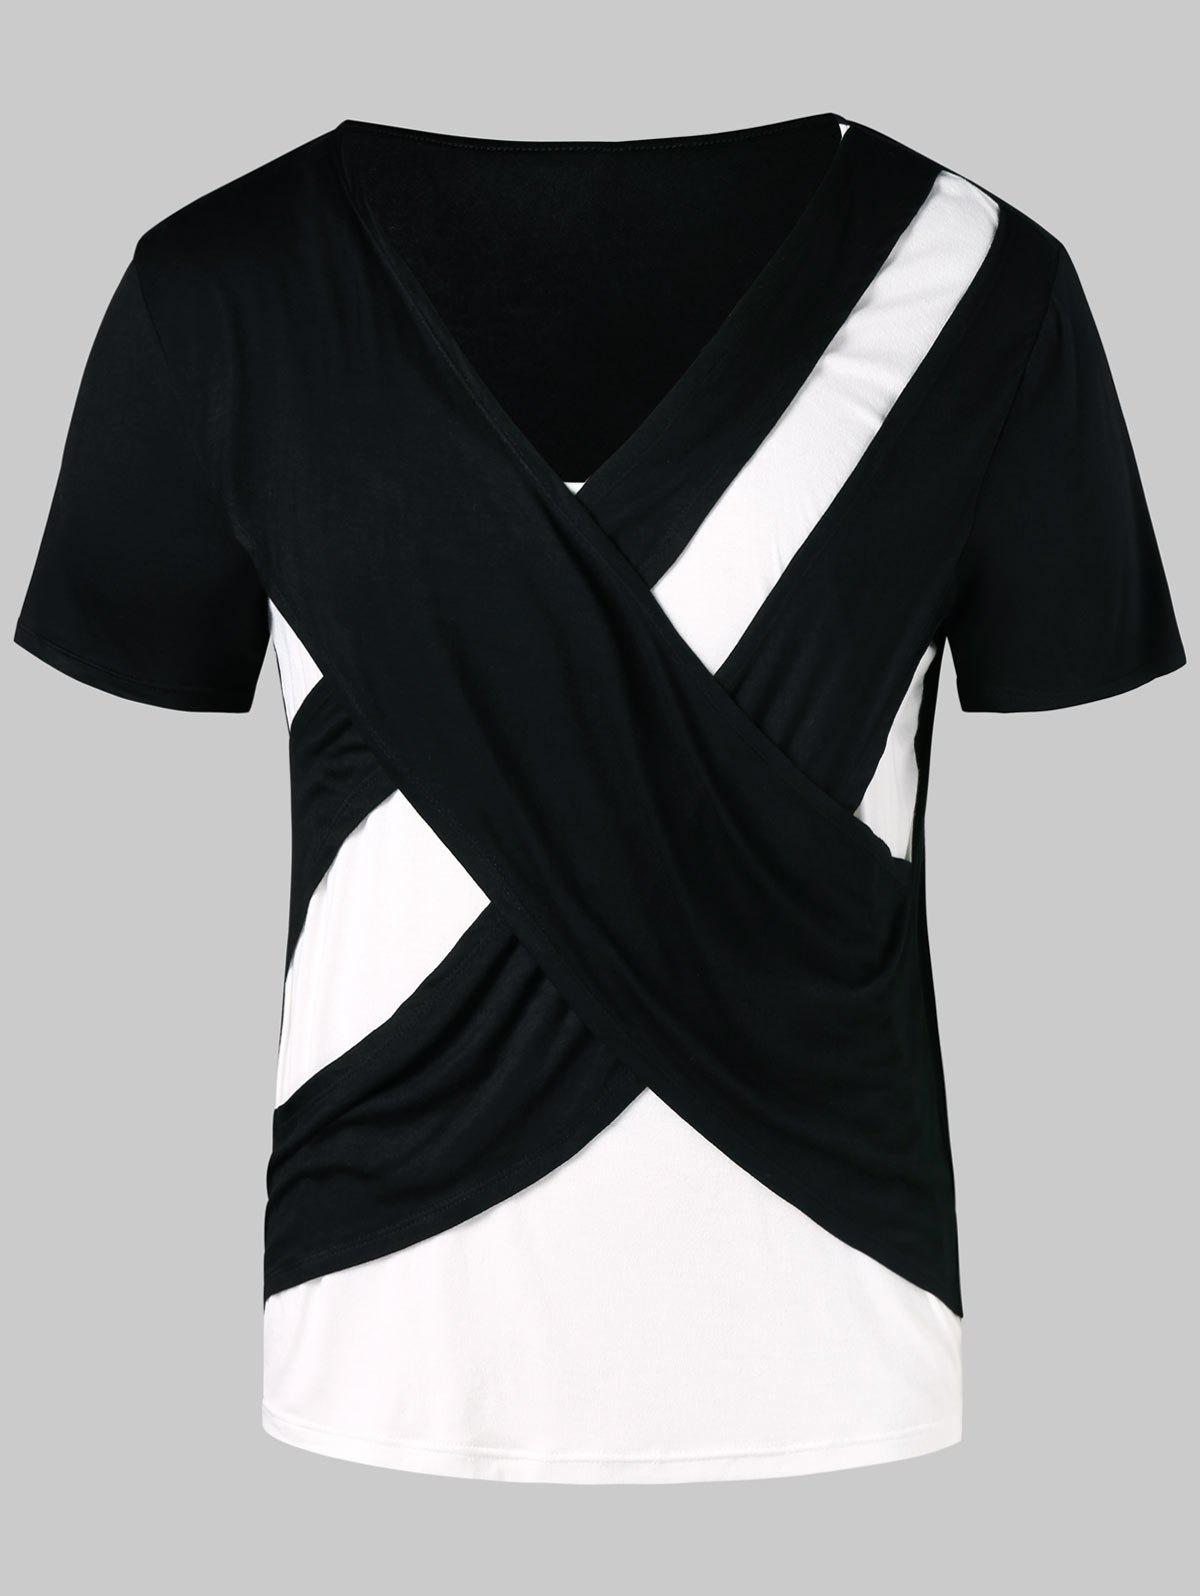 Contrast Color Cross Short Sleeve T-shirt - BLACK XL